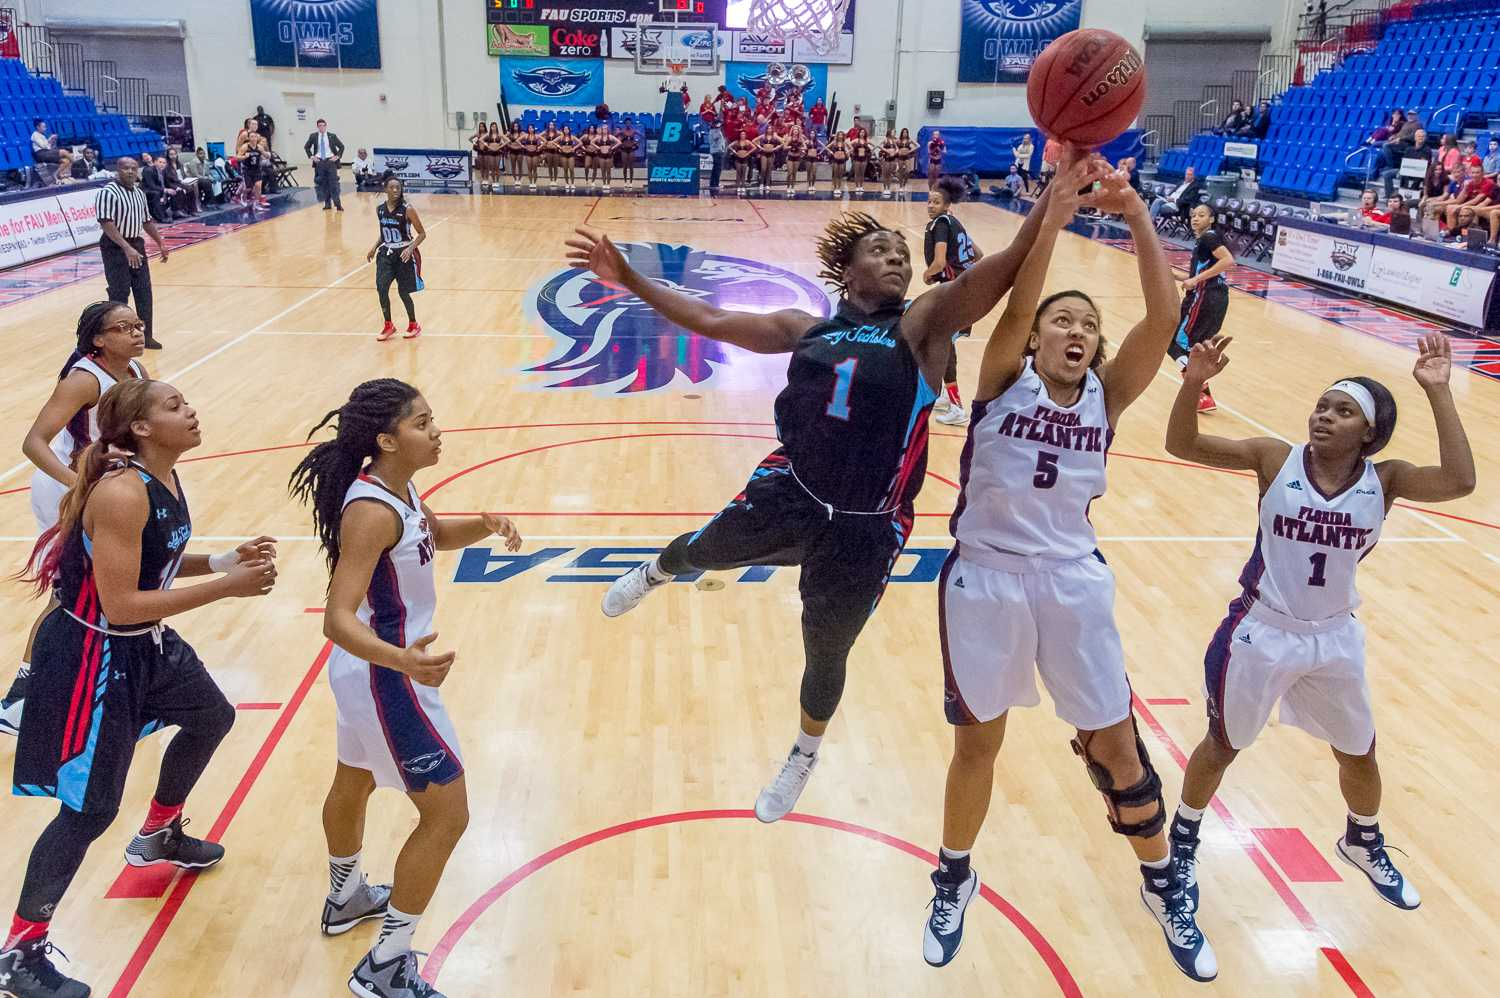 Owls' guard Raven Doyle (5) fights for a rebound with Kelia Shelton (1) of the Lady Techsters.